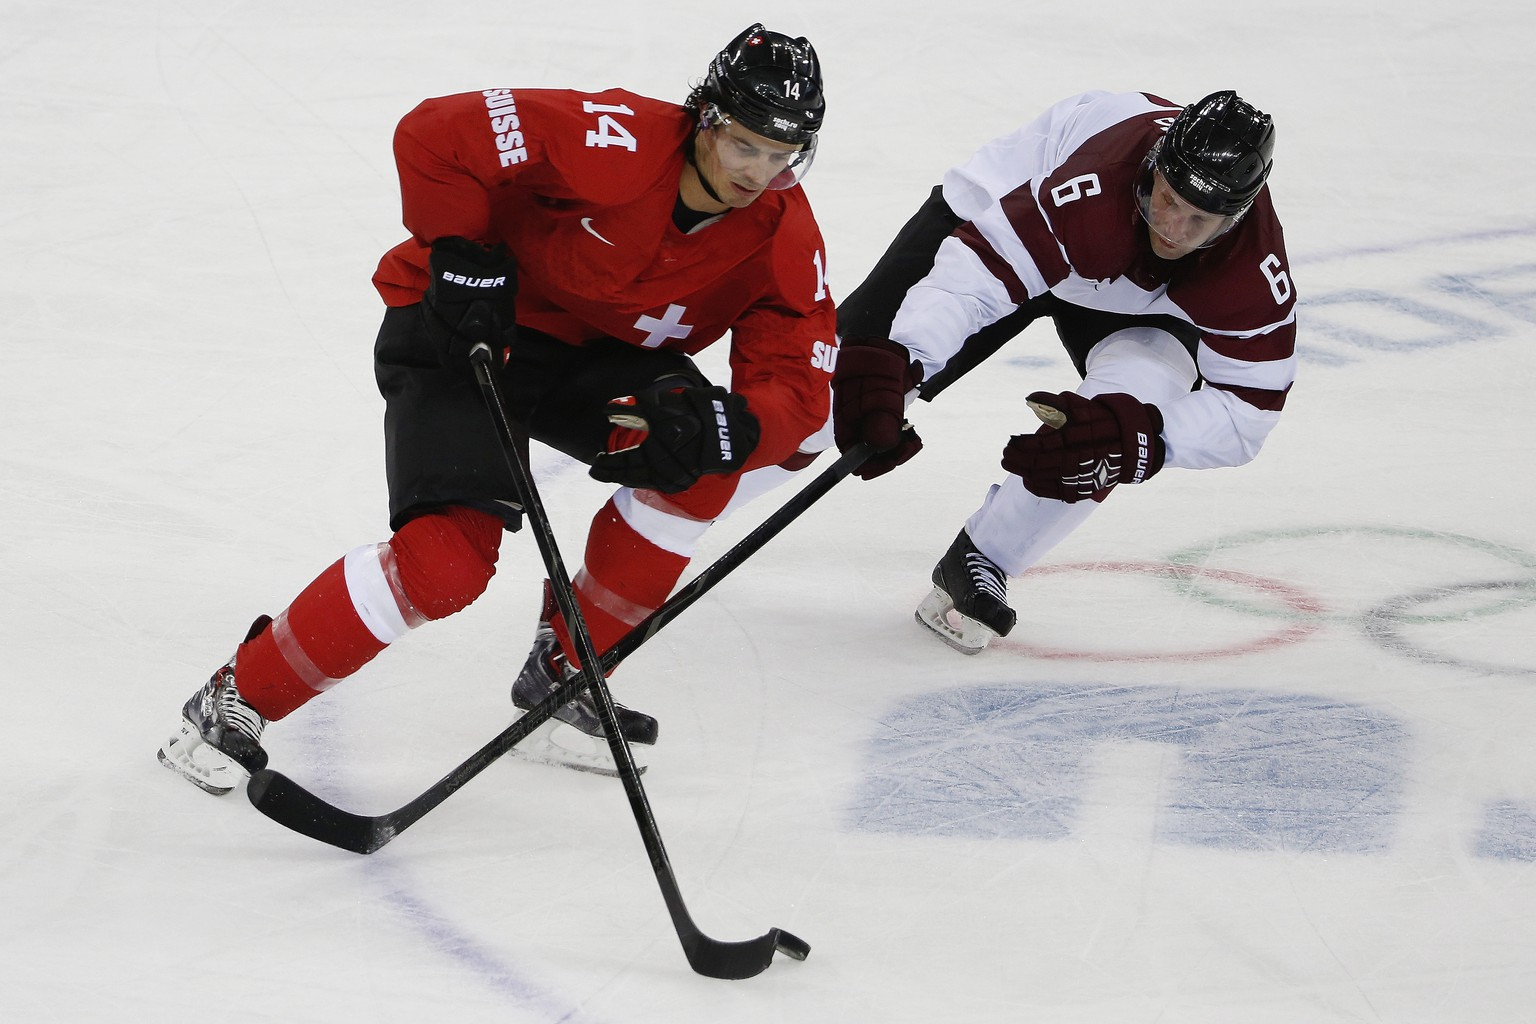 Latvia defenseman Arvids Rekis tries to take control of the puck from Switzerland forward Roman Wick during the second period of the 2014 Winter Olympics men's ice hockey game at Shayba Arena, Wednesday, Feb. 12, 2014, in Sochi, Russia. (AP Photo/Petr David Josek)